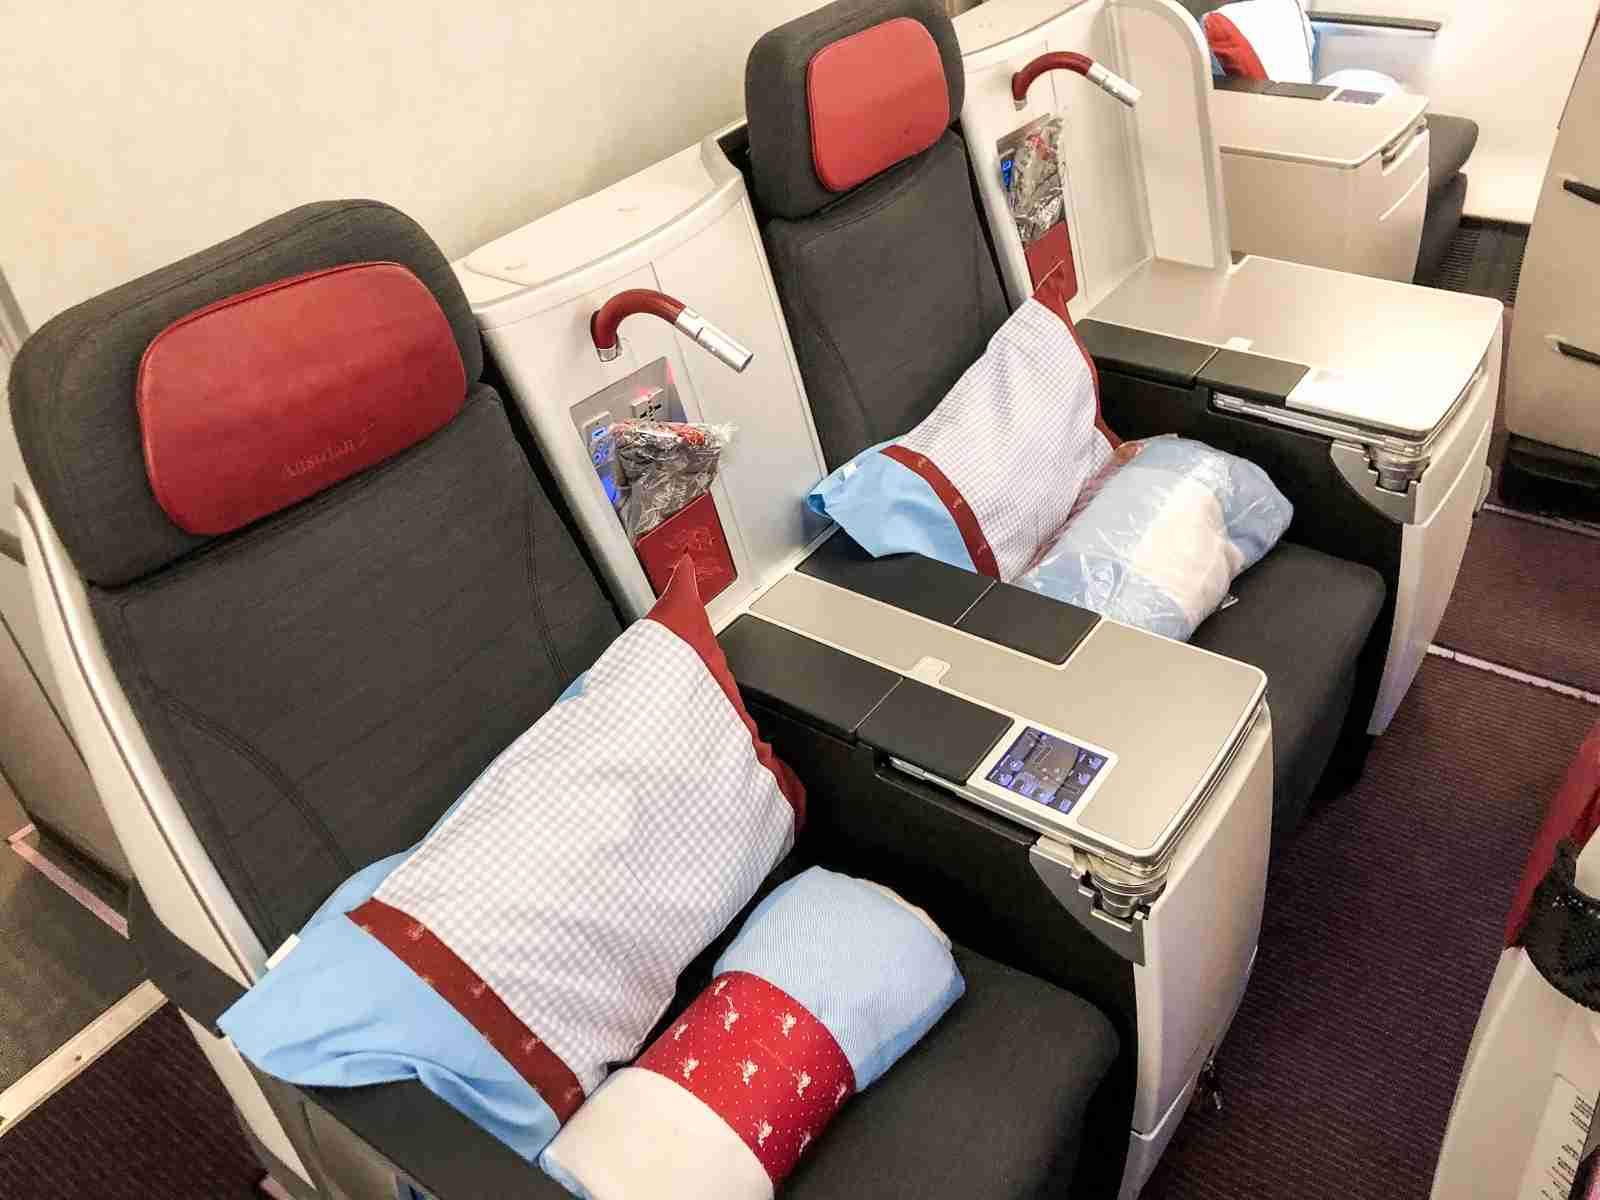 Austrian Business Class (Summer Hull / The Points Guy)